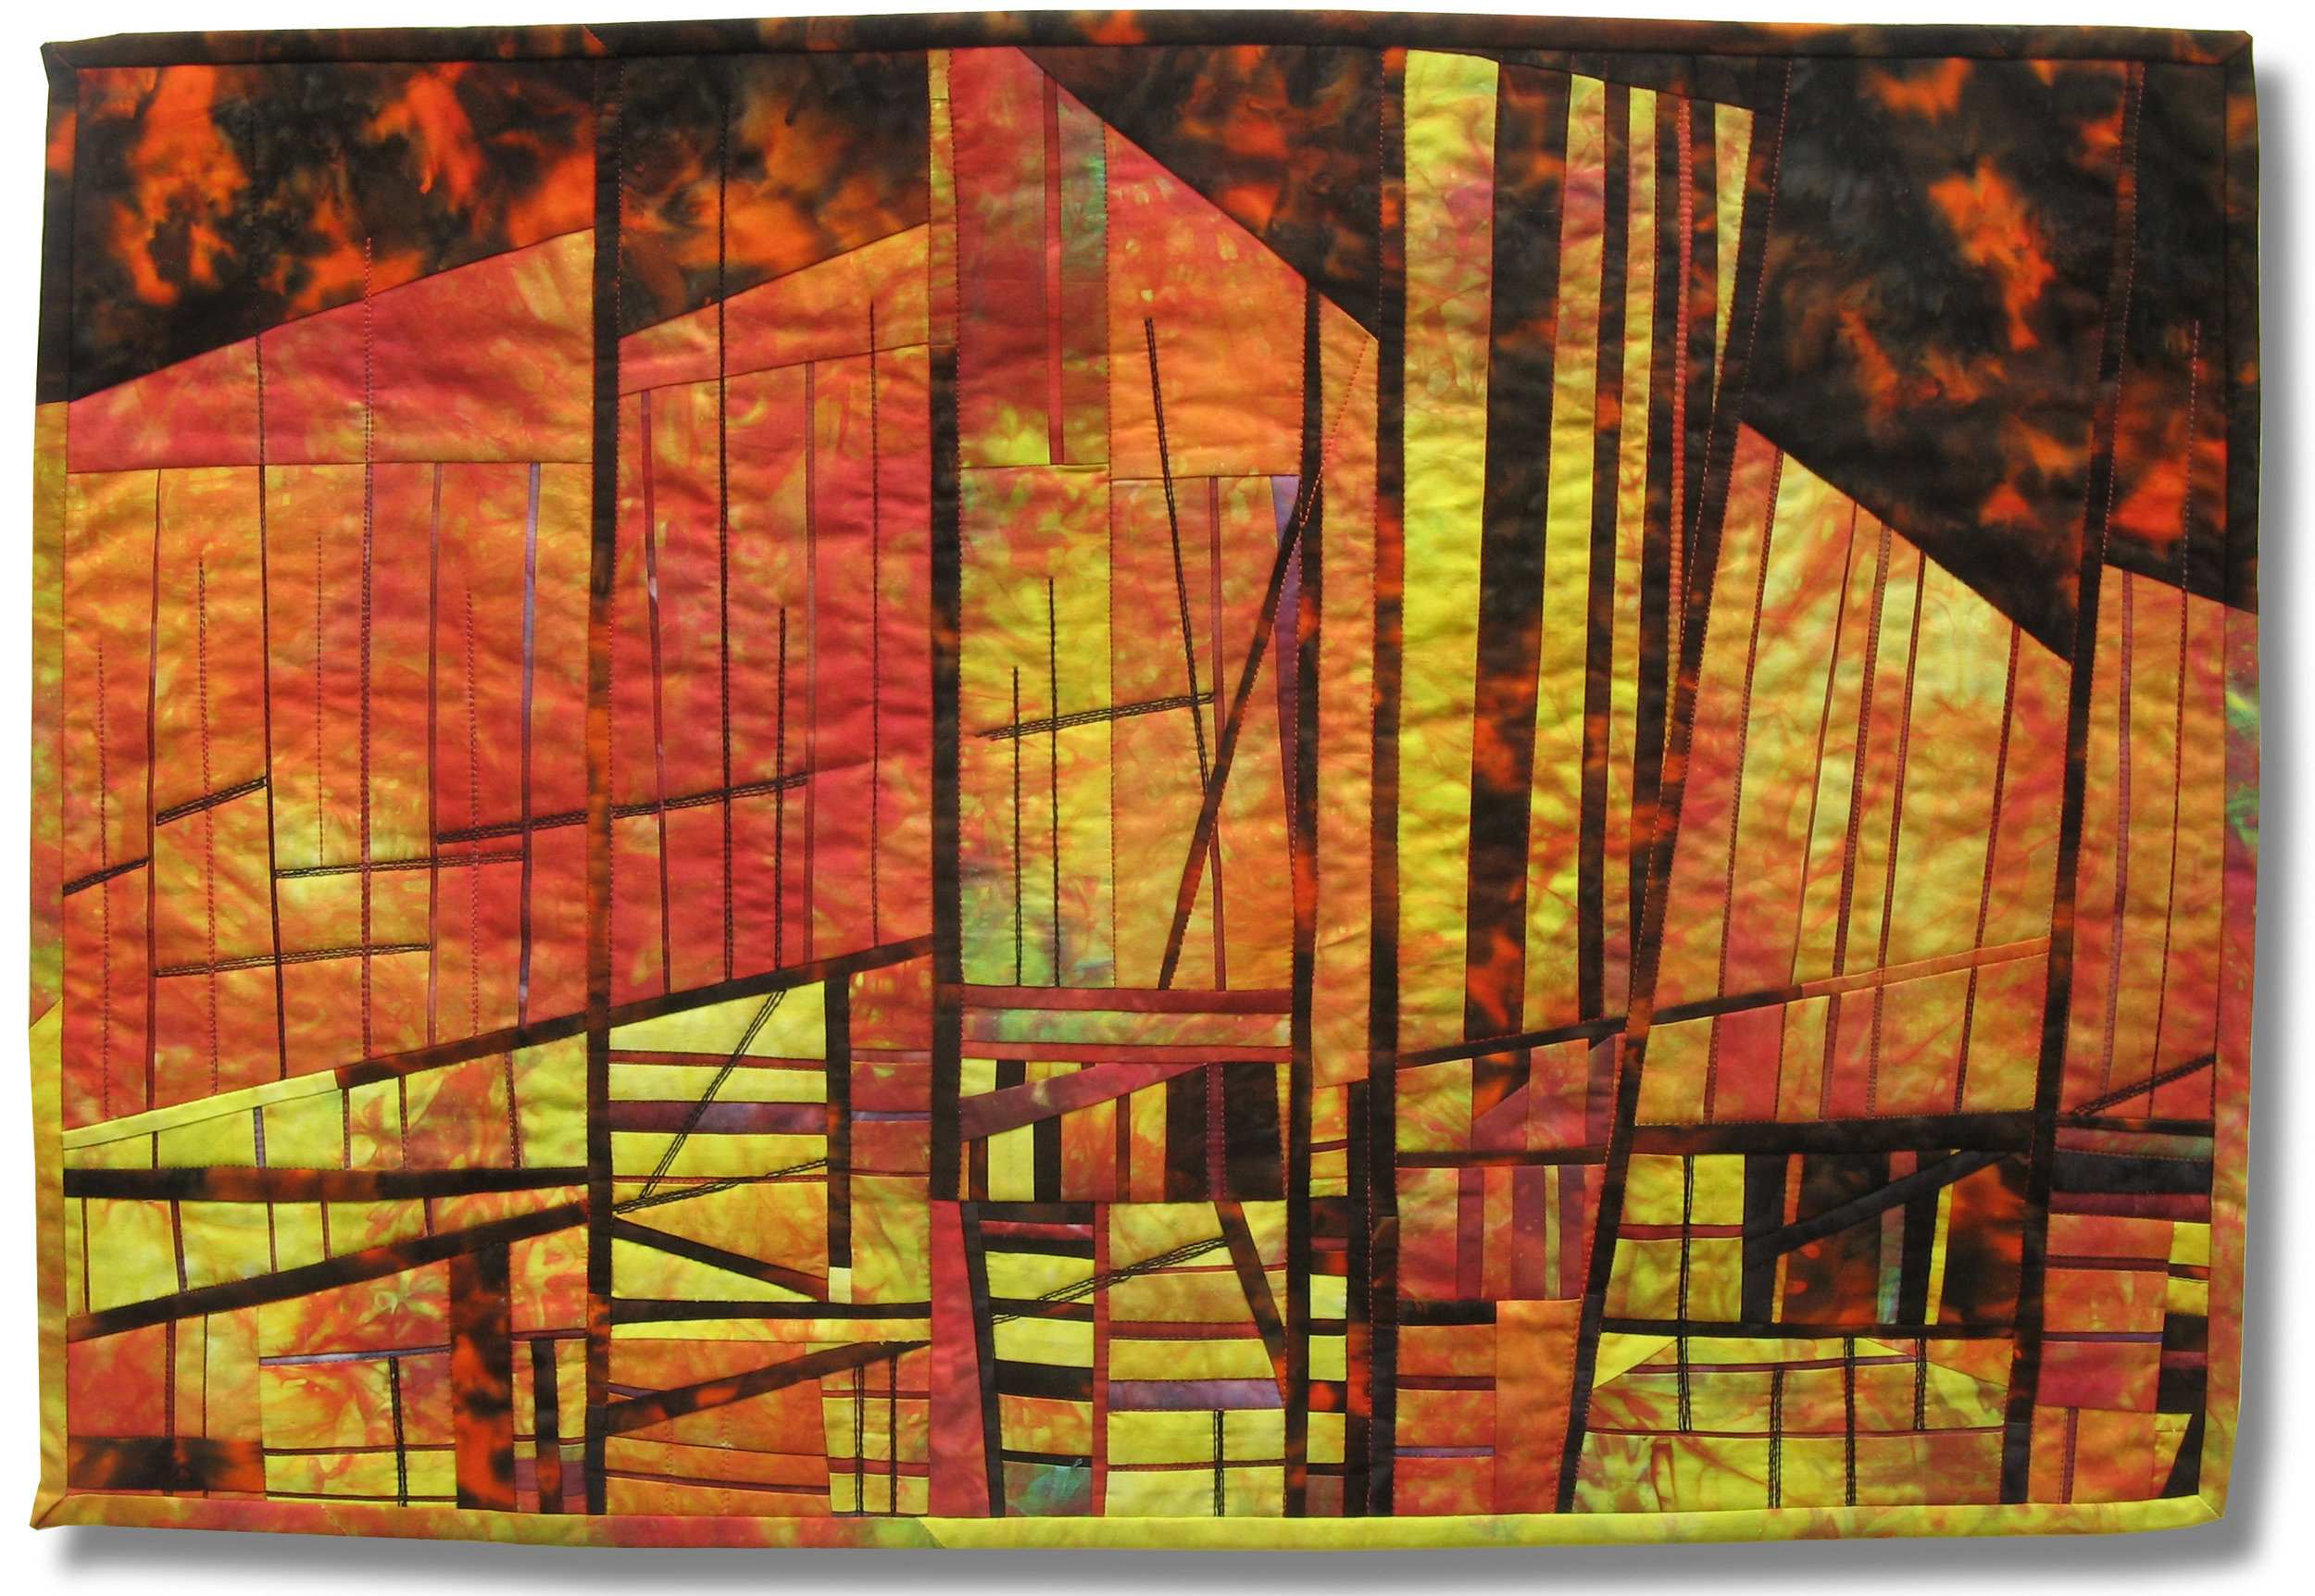 "Mountain Blaze - PLaying with fire - 27.5"" x 19""Second Place, Original Design Abstract Pictorial Canadian Quilt Association National Juried Show 2015This art quilt was inspired by an article and picture about the destructive forest fires in Northern Alberta that was published in the Calgary Herald in the summer of 2012. I love the contrast between the orange and black in a linear way - also the contrast between the horizontal and vertical trees on fire. I incorporated my own dyed fabrics into the piece."